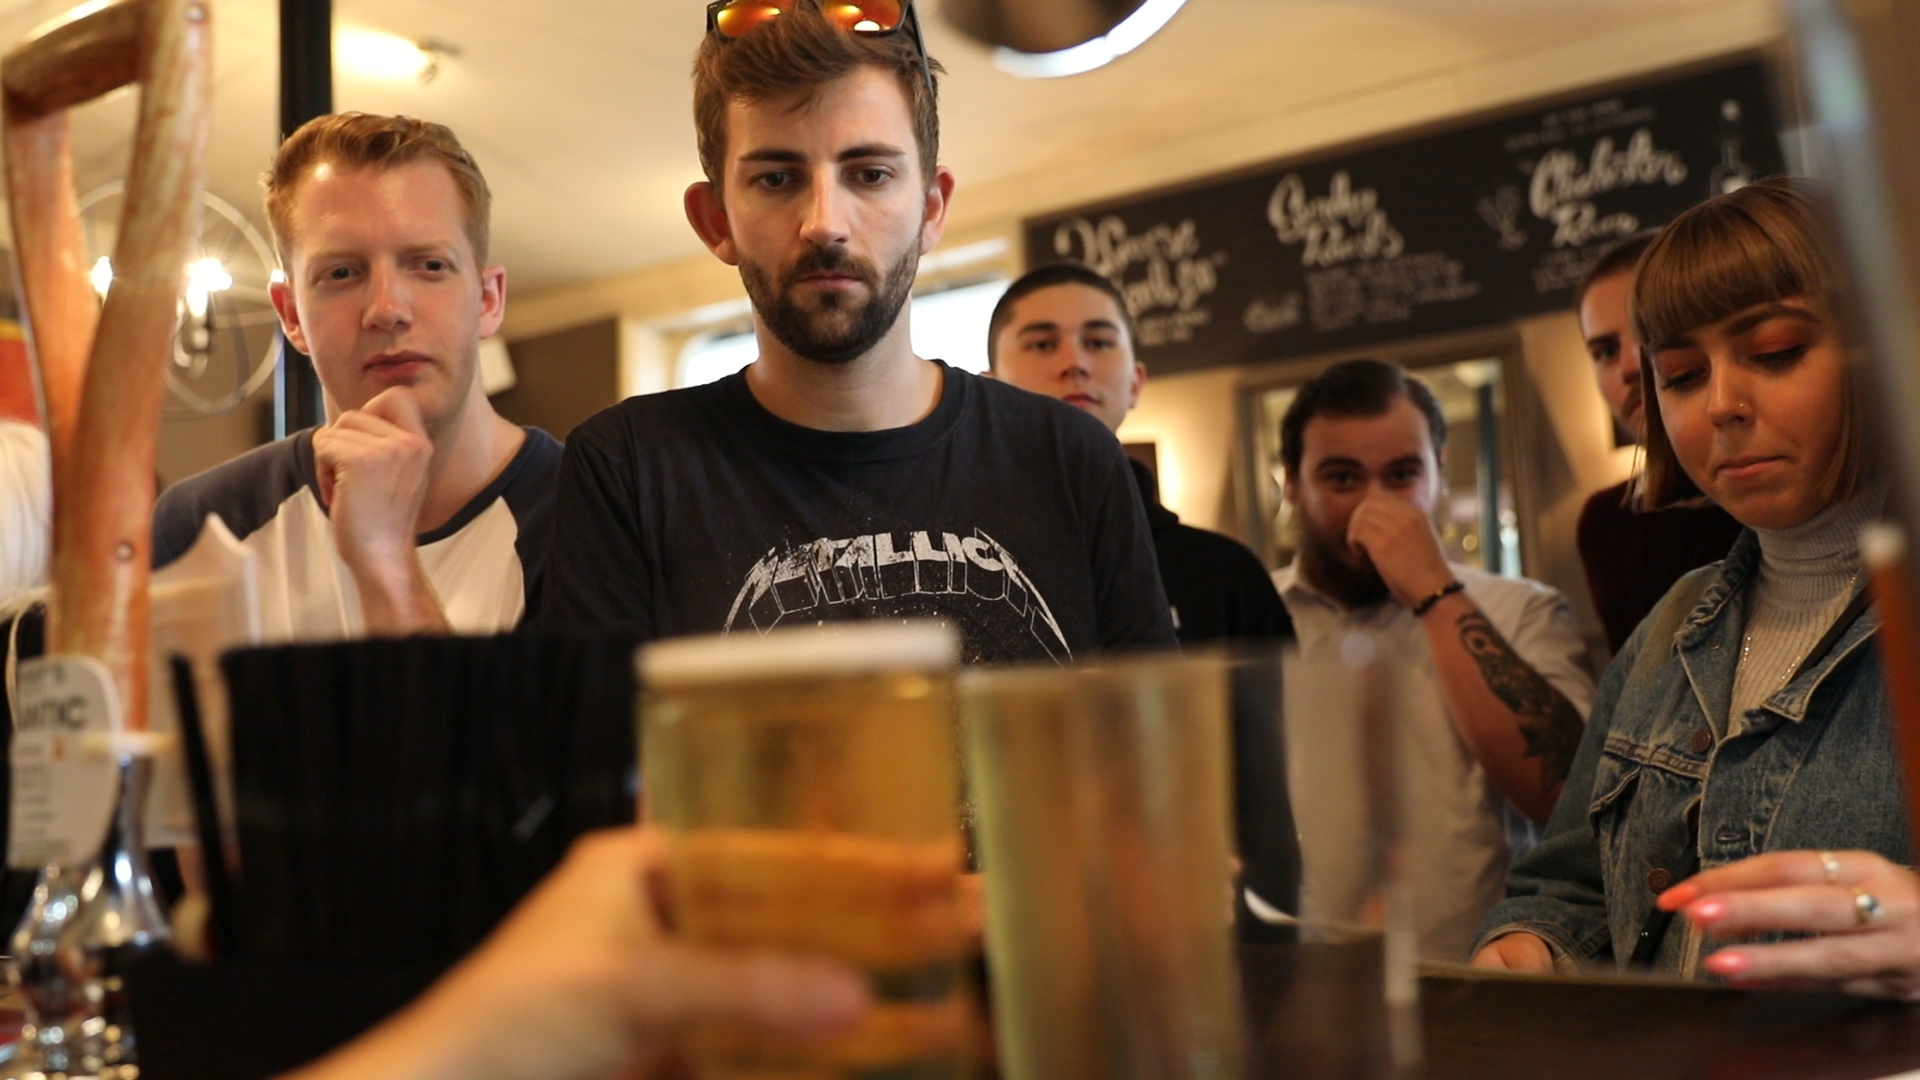 Young people ordering beers in a pub